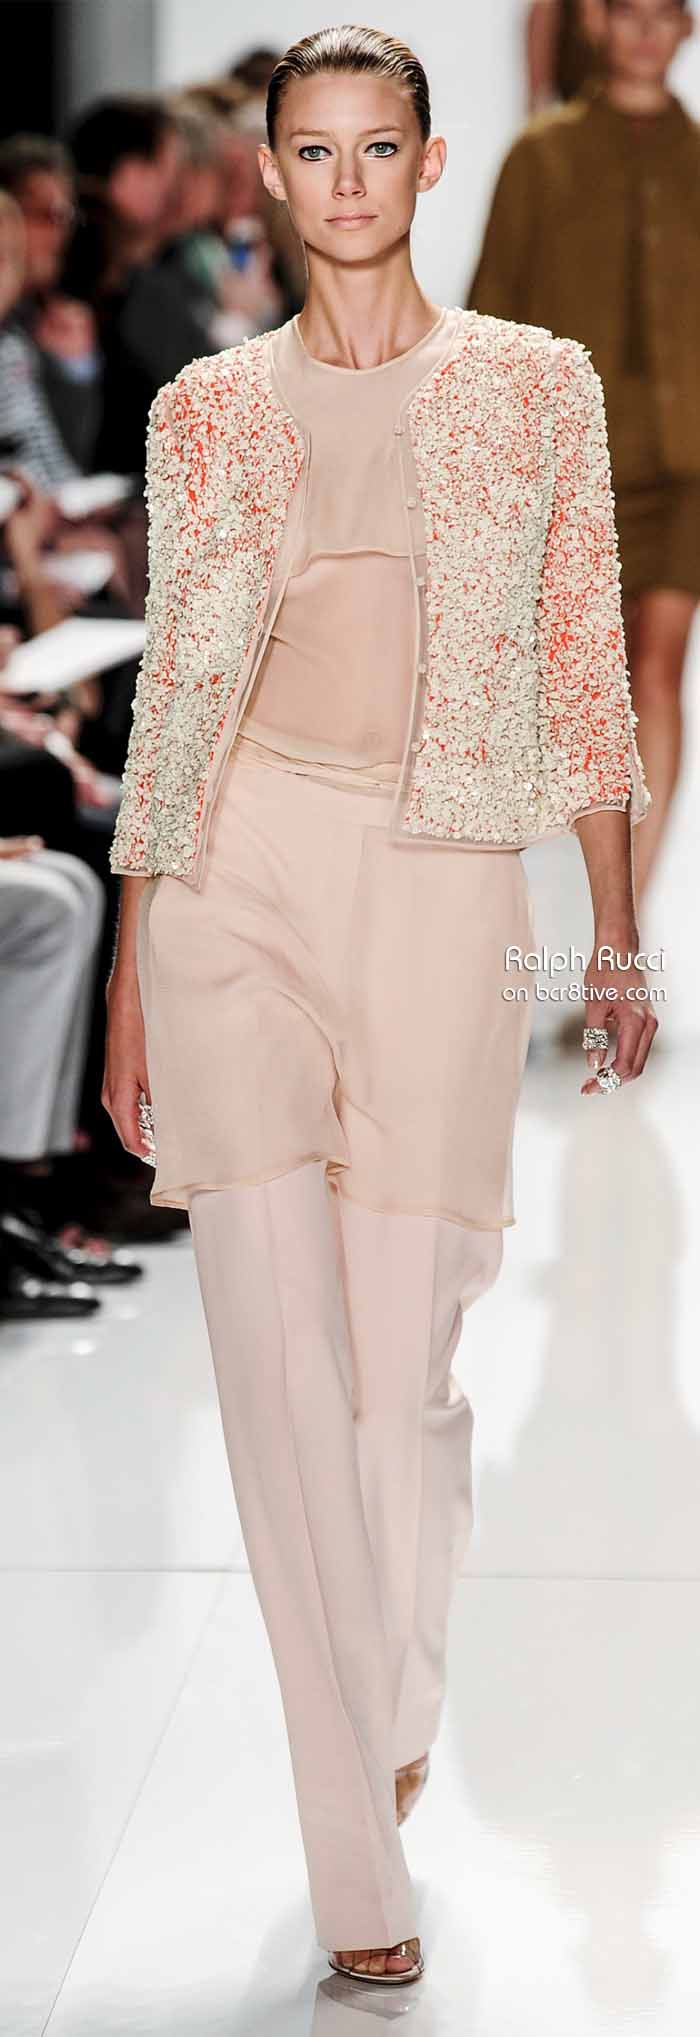 Ralph Rucci Spring 2014 #NYFW - Stone Crusted Jacket